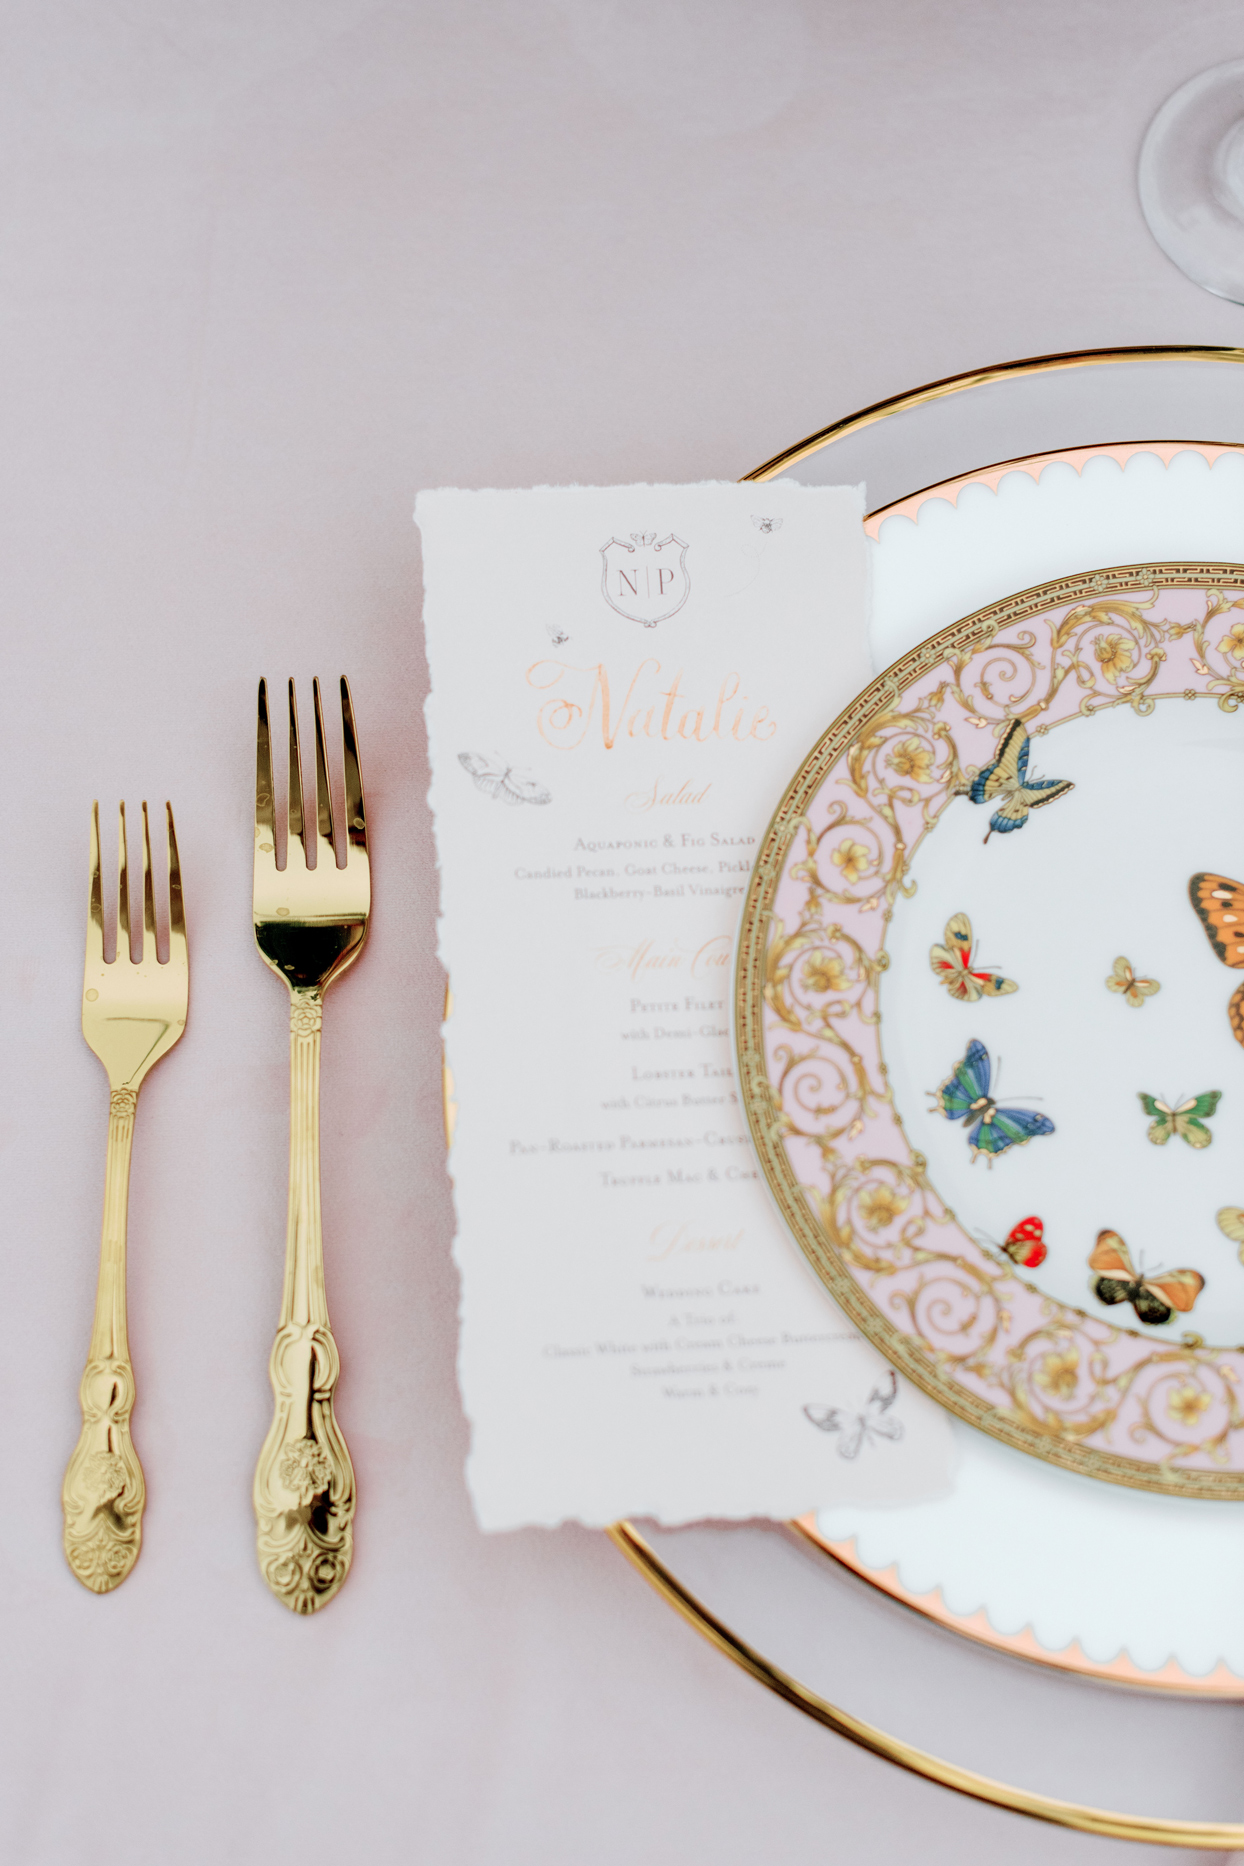 china table setting with gold accents and silverware